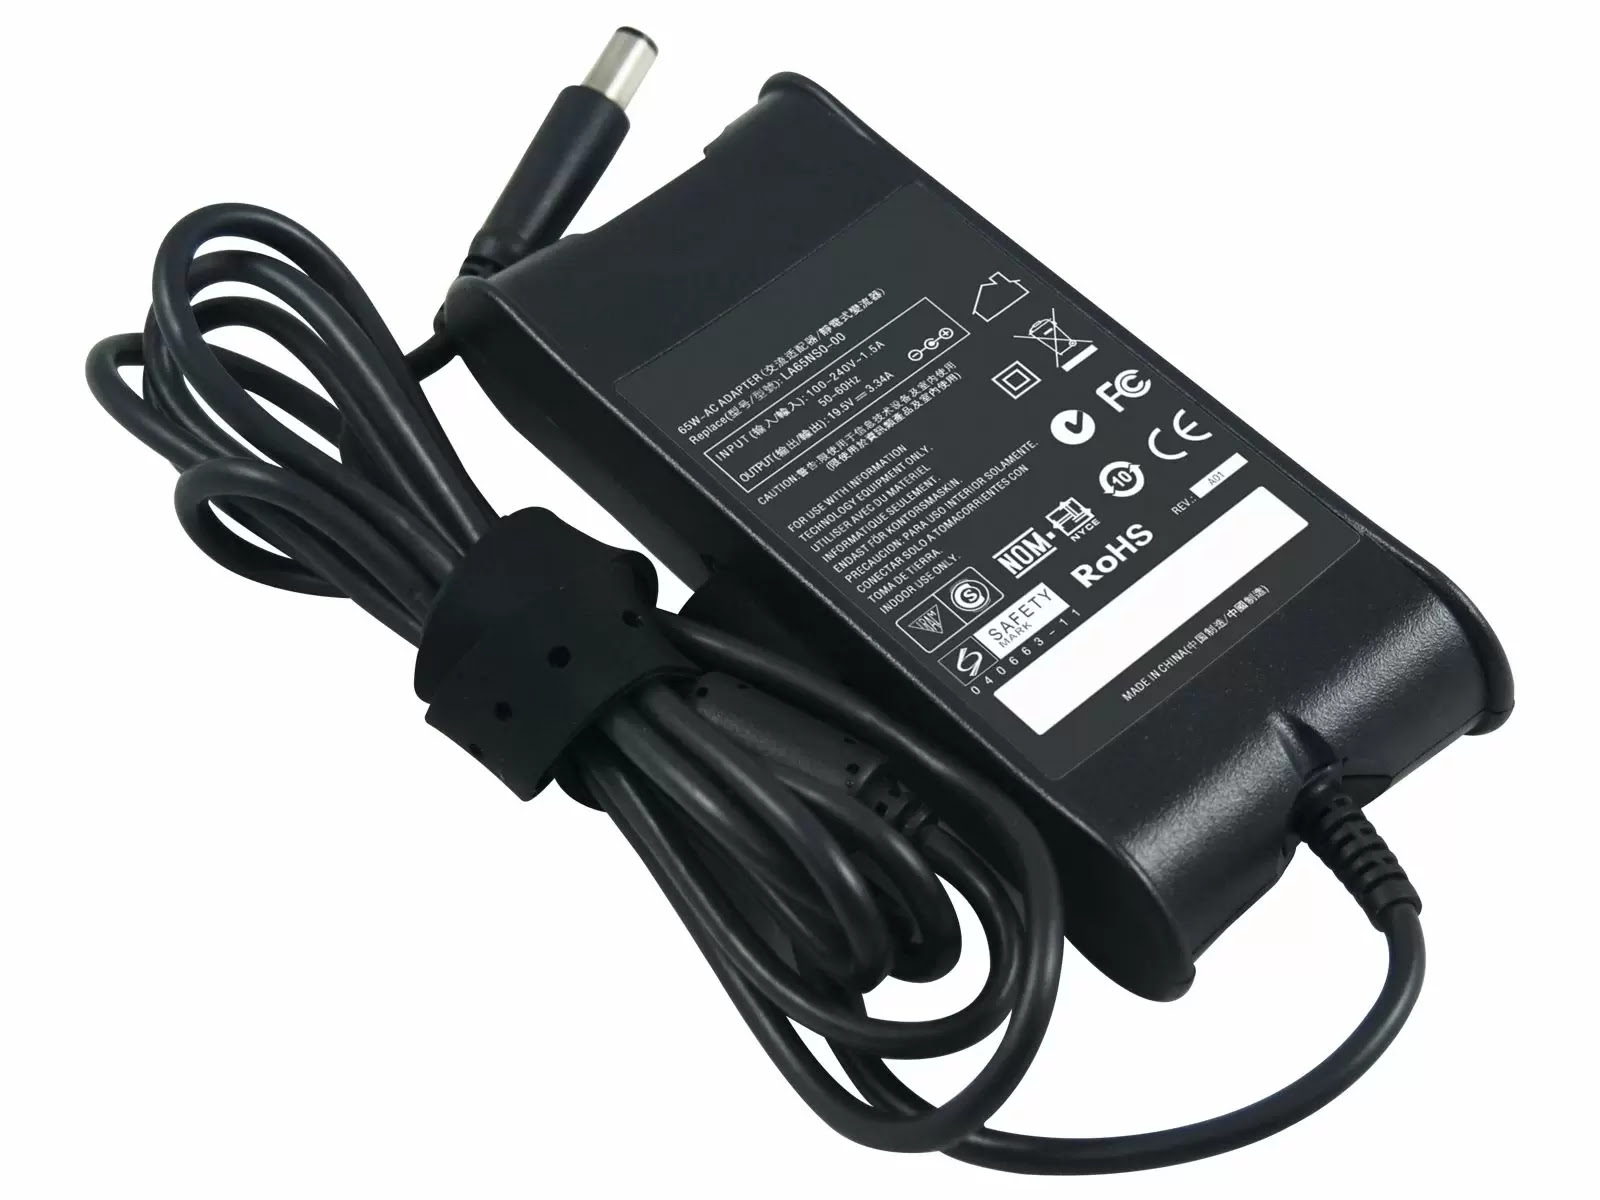 Dell Laptop Charger Price in Pakistan, Specifications ...